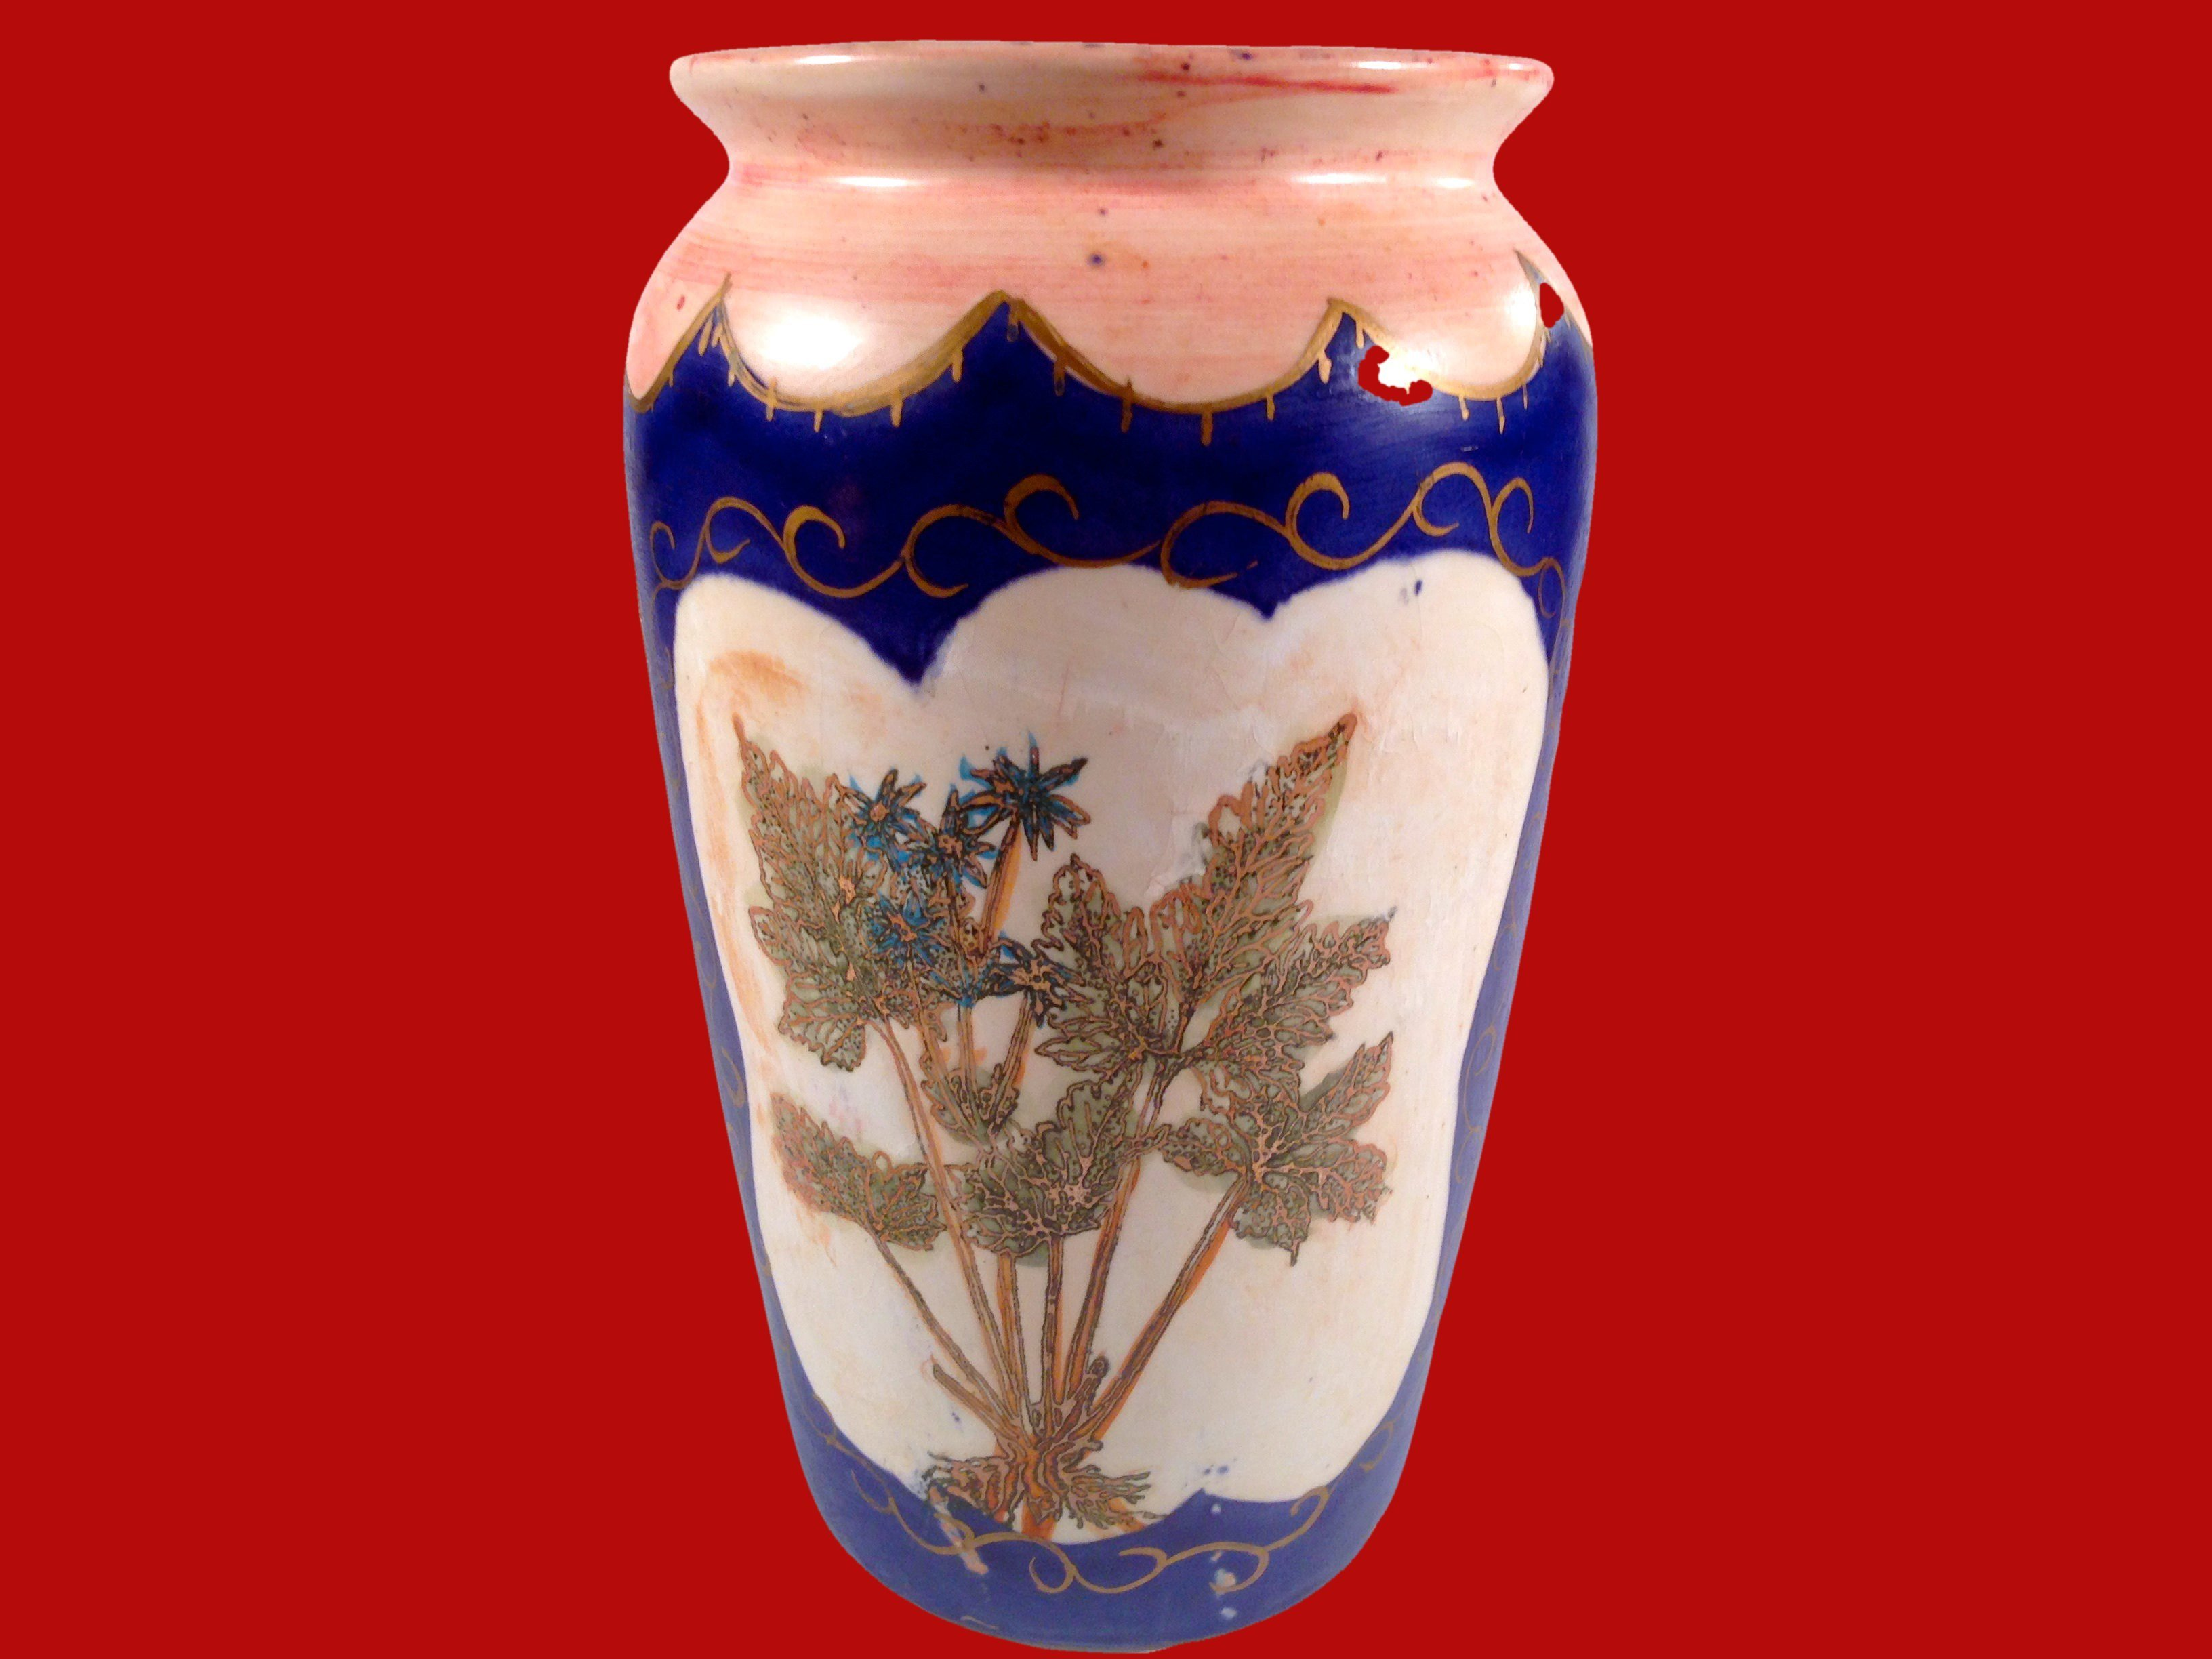 Painted Bohemian Vase Cobalt Blue Pink Ferns and Flowers